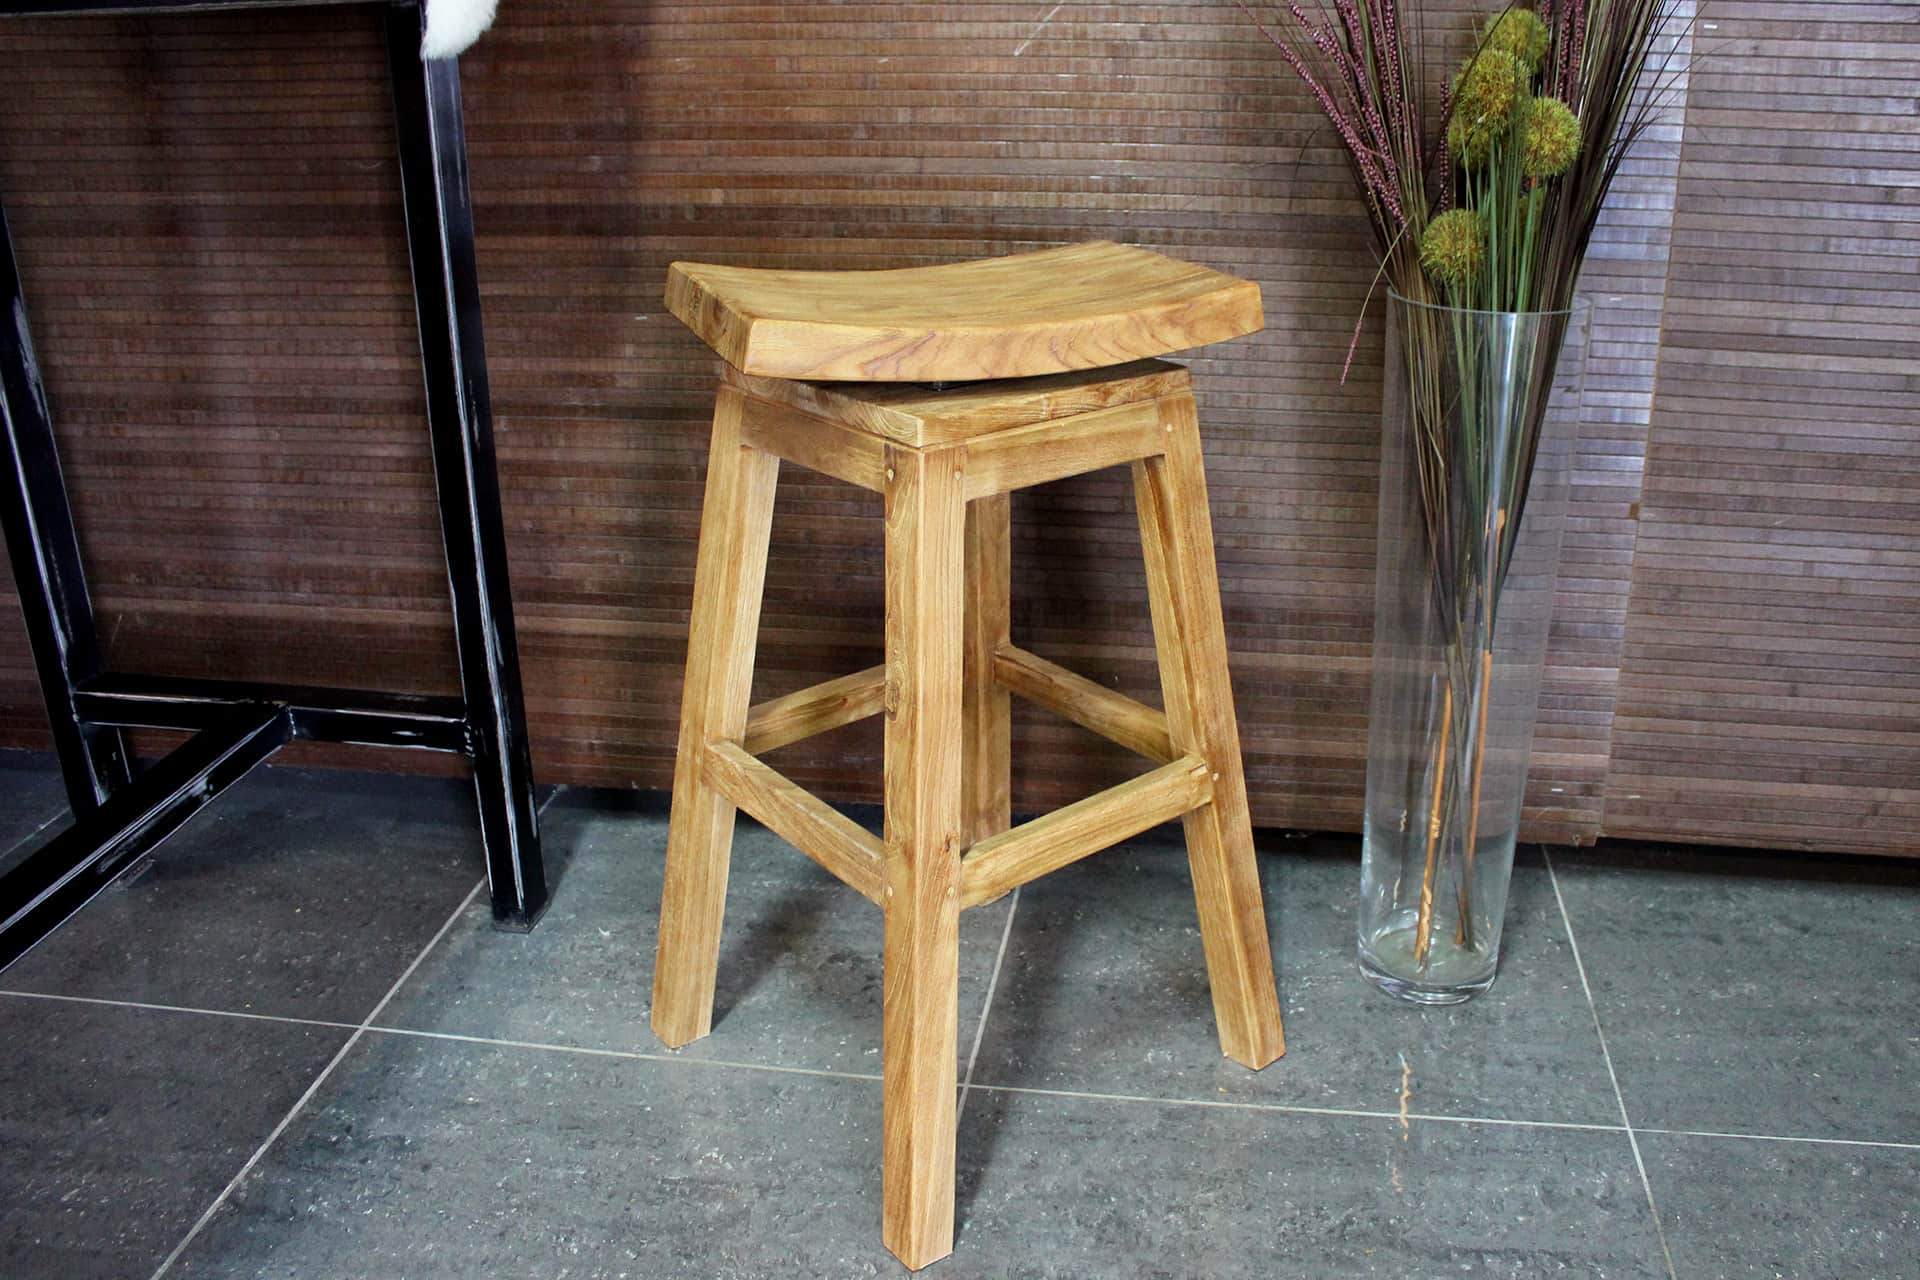 Barstool Teak Lapang | design barstool teak with rotating seat. Modern wooden bar stool or bar stool in old teak from Indonesia. Teak stools at TEAK2.